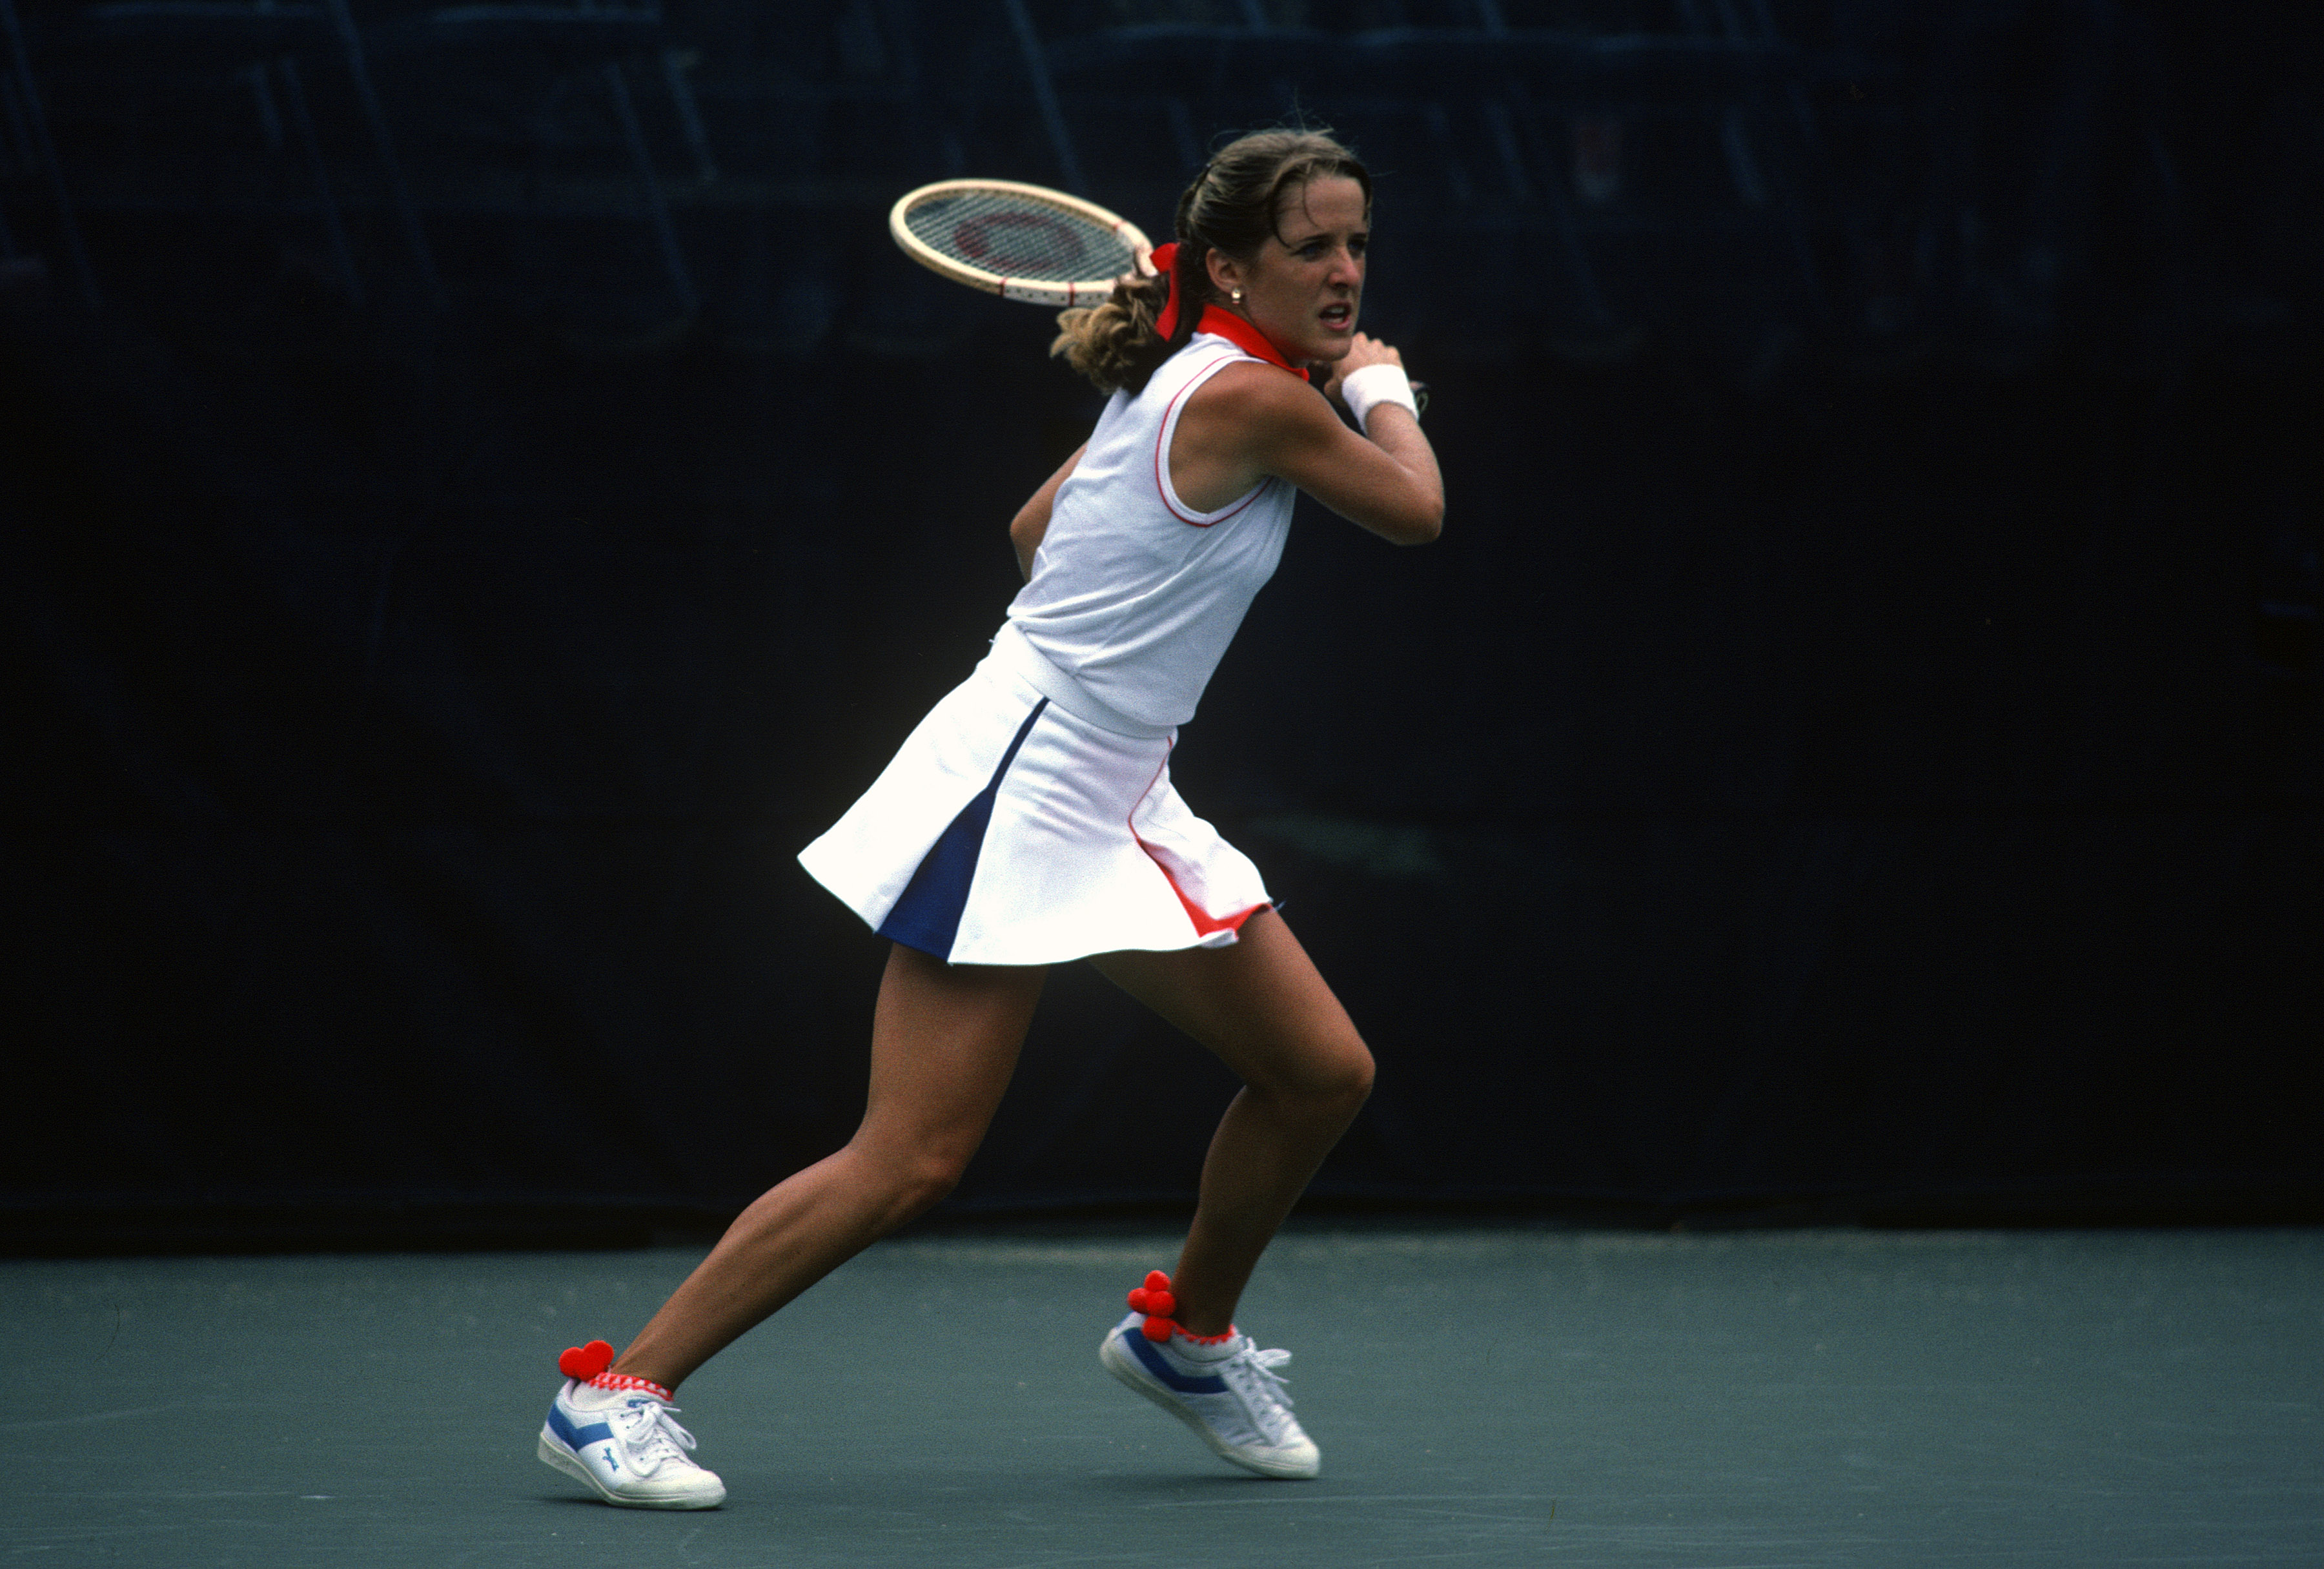 <b>Tracy Austin</b> In 1979, 16-year-old Tracy Austin became the youngest player ever to win the U.S. Open when she defeated four-time defending champion Chris Evert 6-4, 6-3. Austin's deep and unerring ground strokes led her to the title at Flushing Meadows again in 1981, and despite recurring sciatica, she intermittently held the No. 1 ranking.